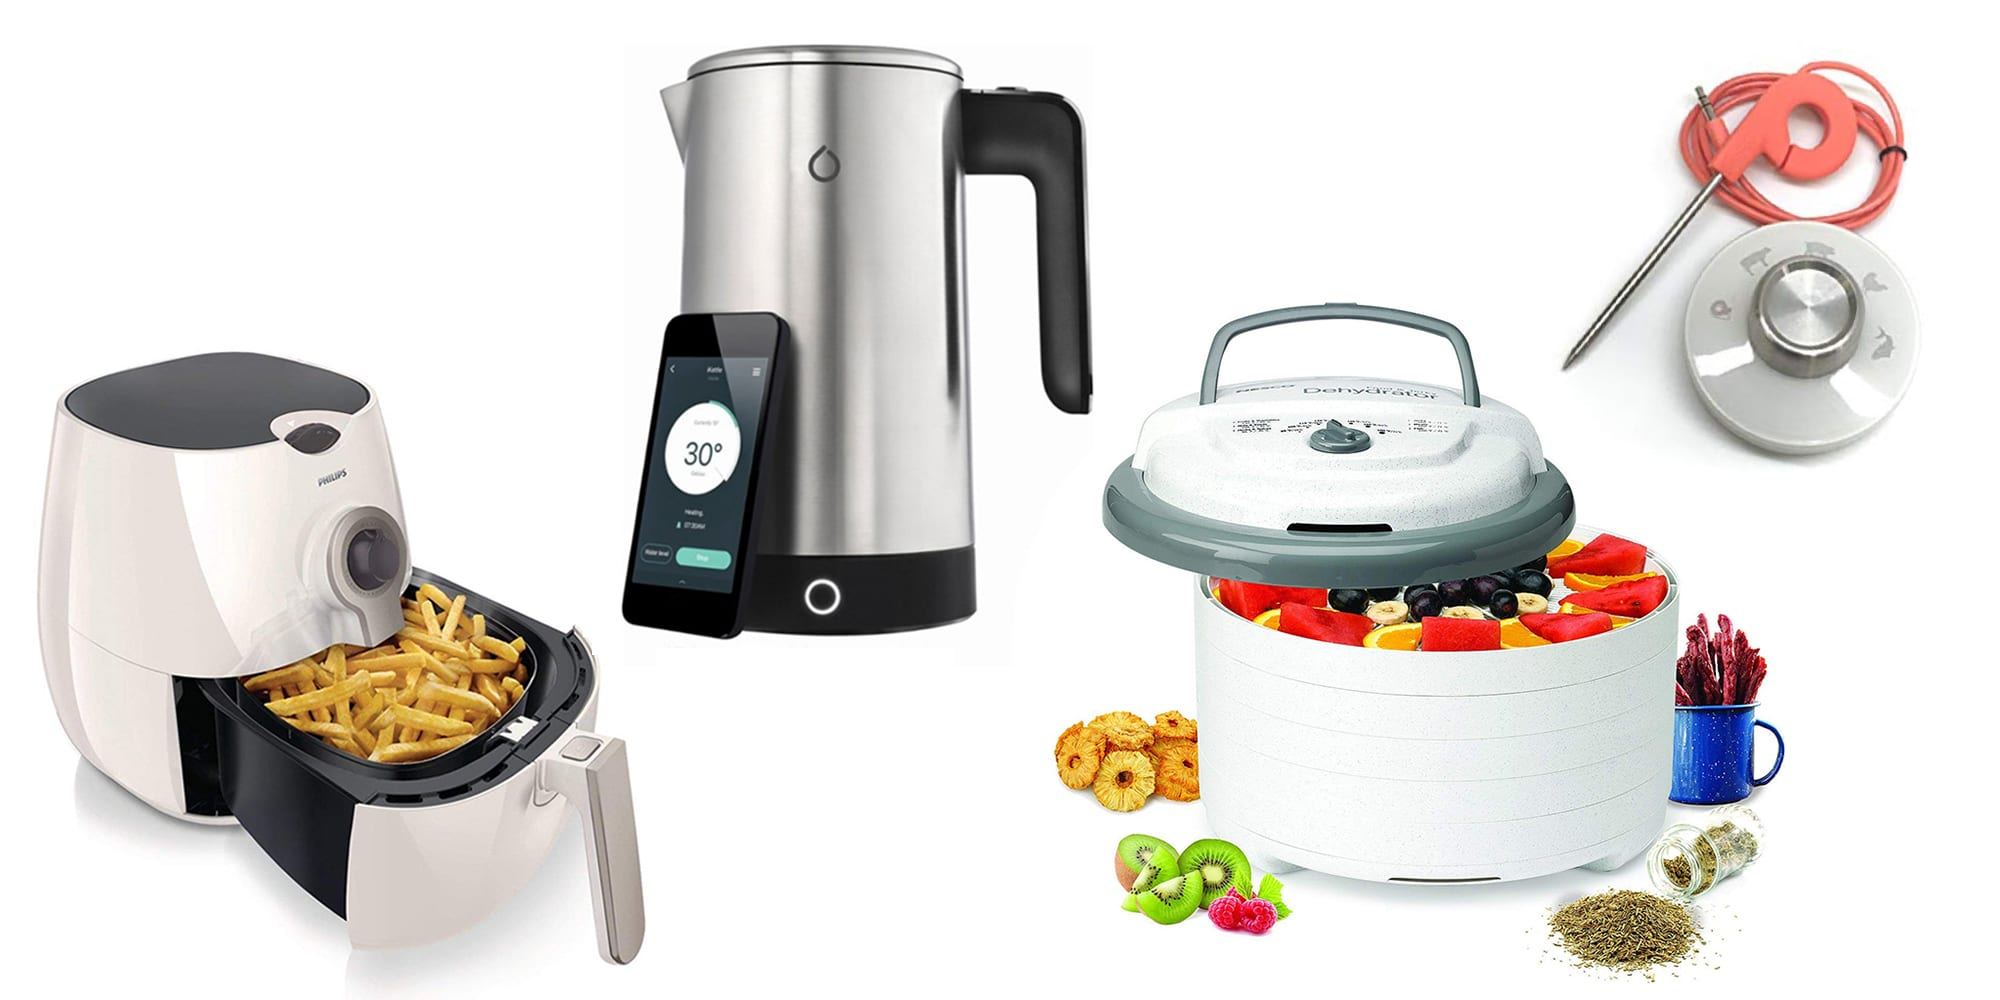 Gadget Cuisine 6 Kitchen Gadgets To Make Cooking Faster And Easier Openfit